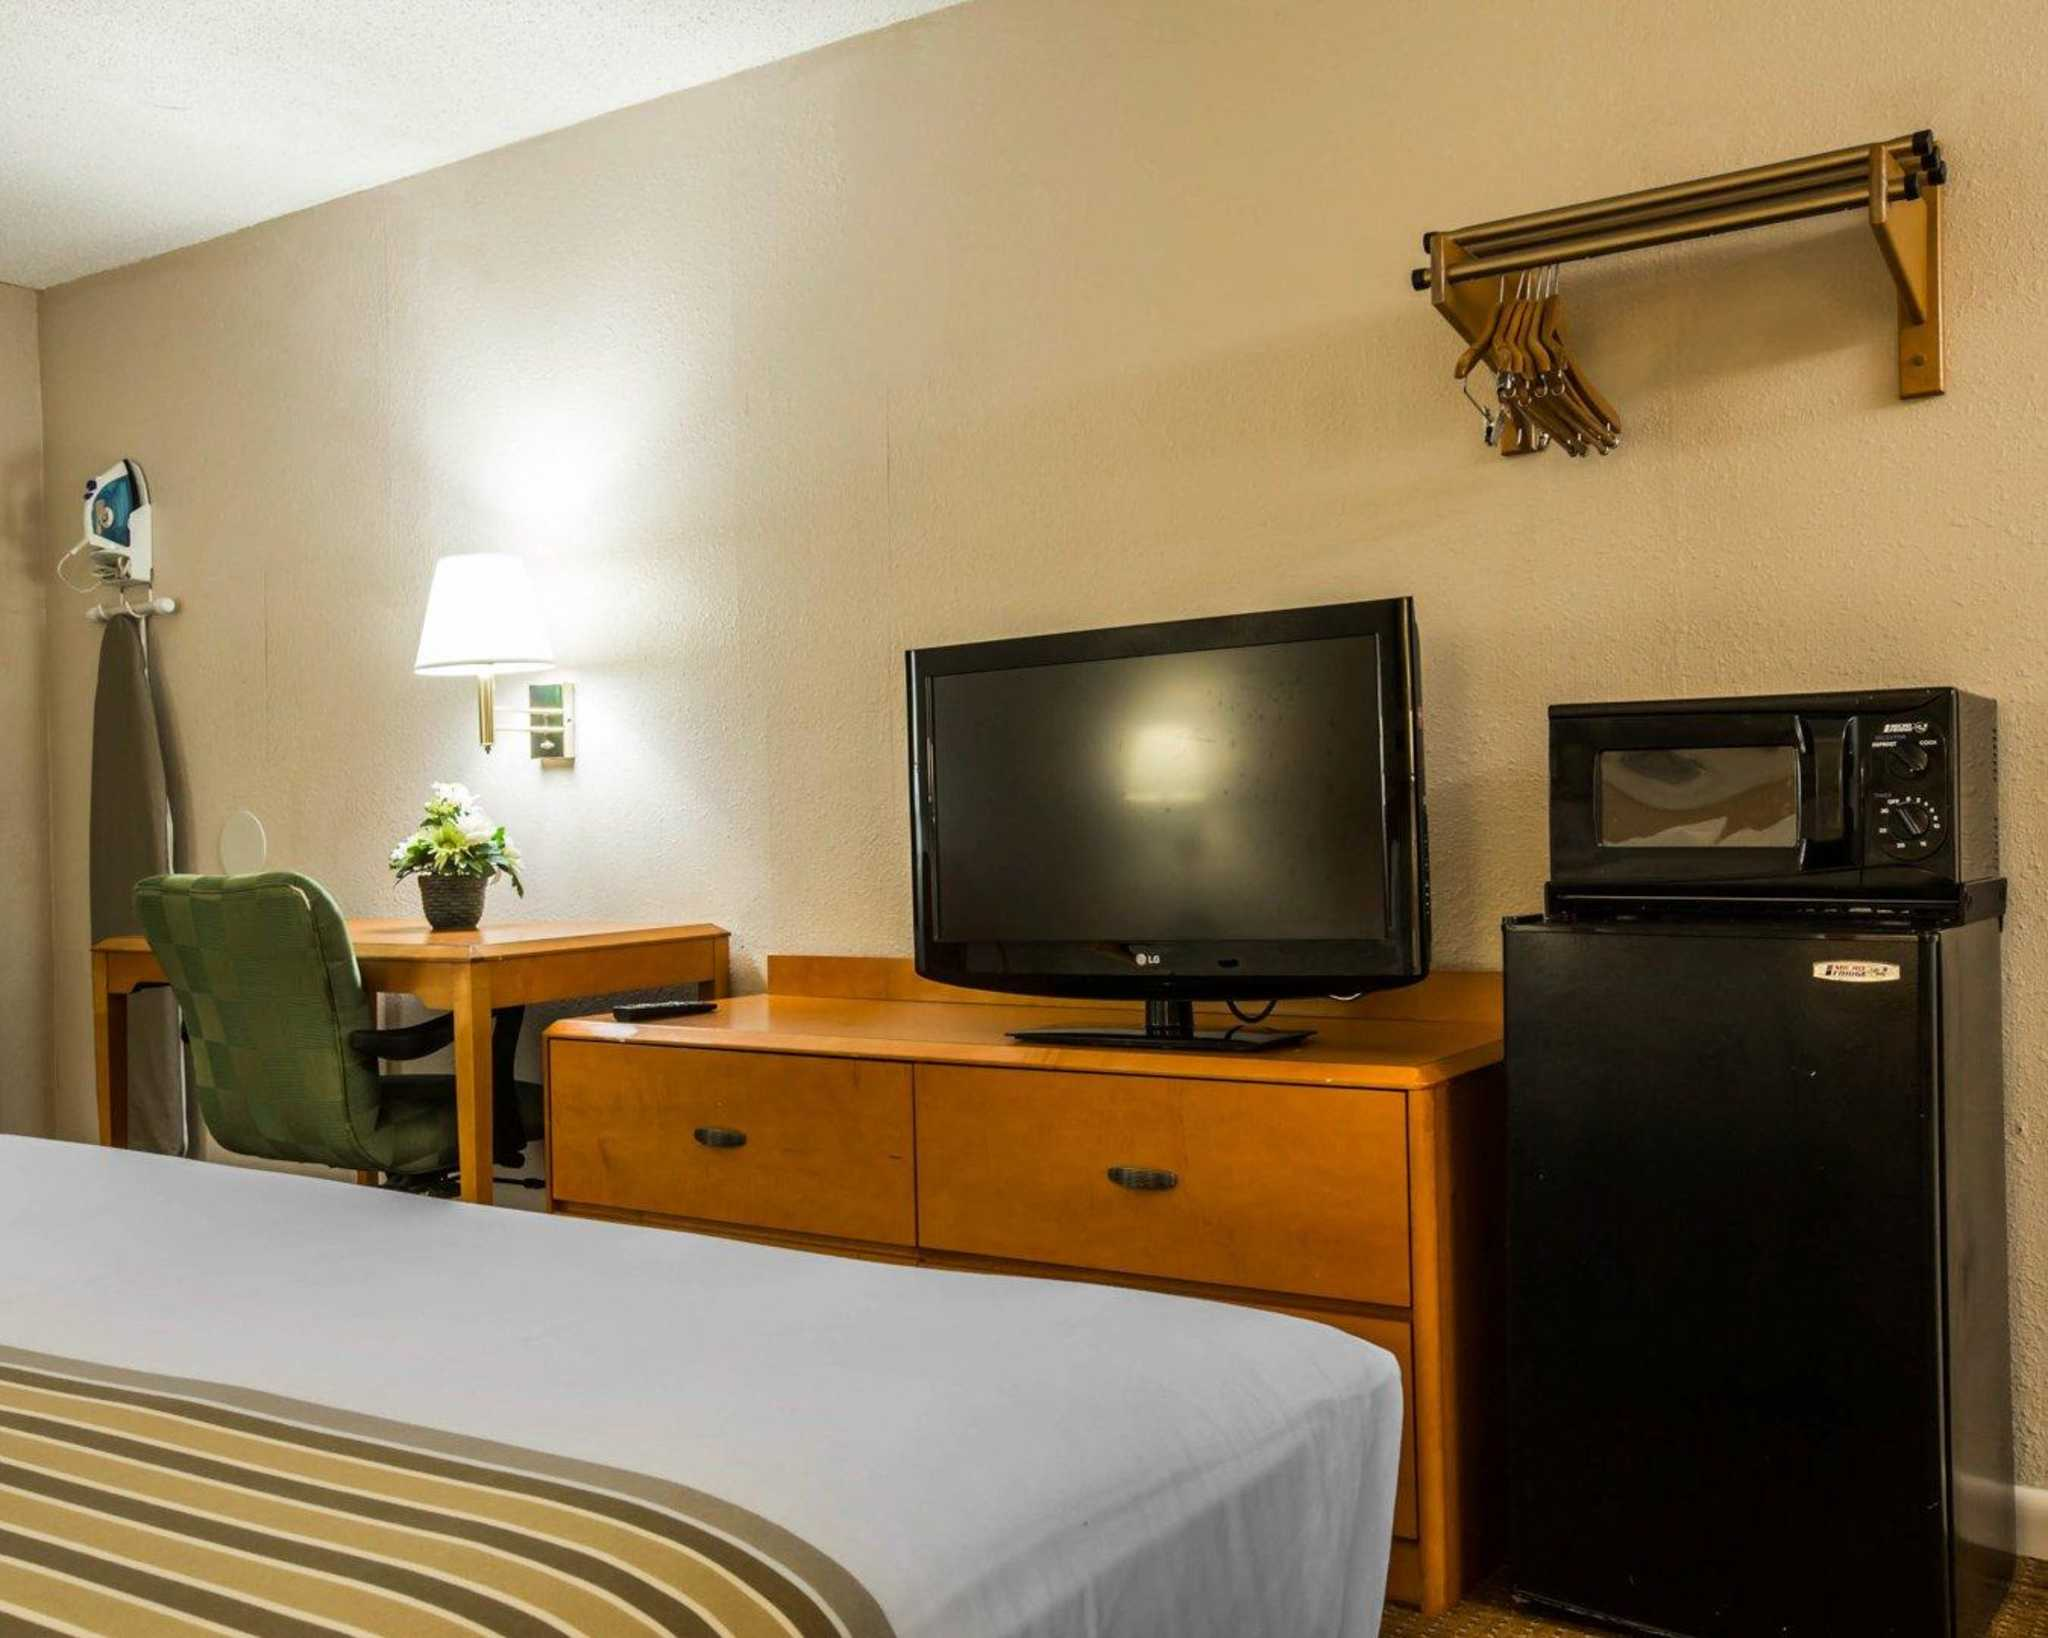 Econo Lodge Inn & Suites at Fort Benning image 7